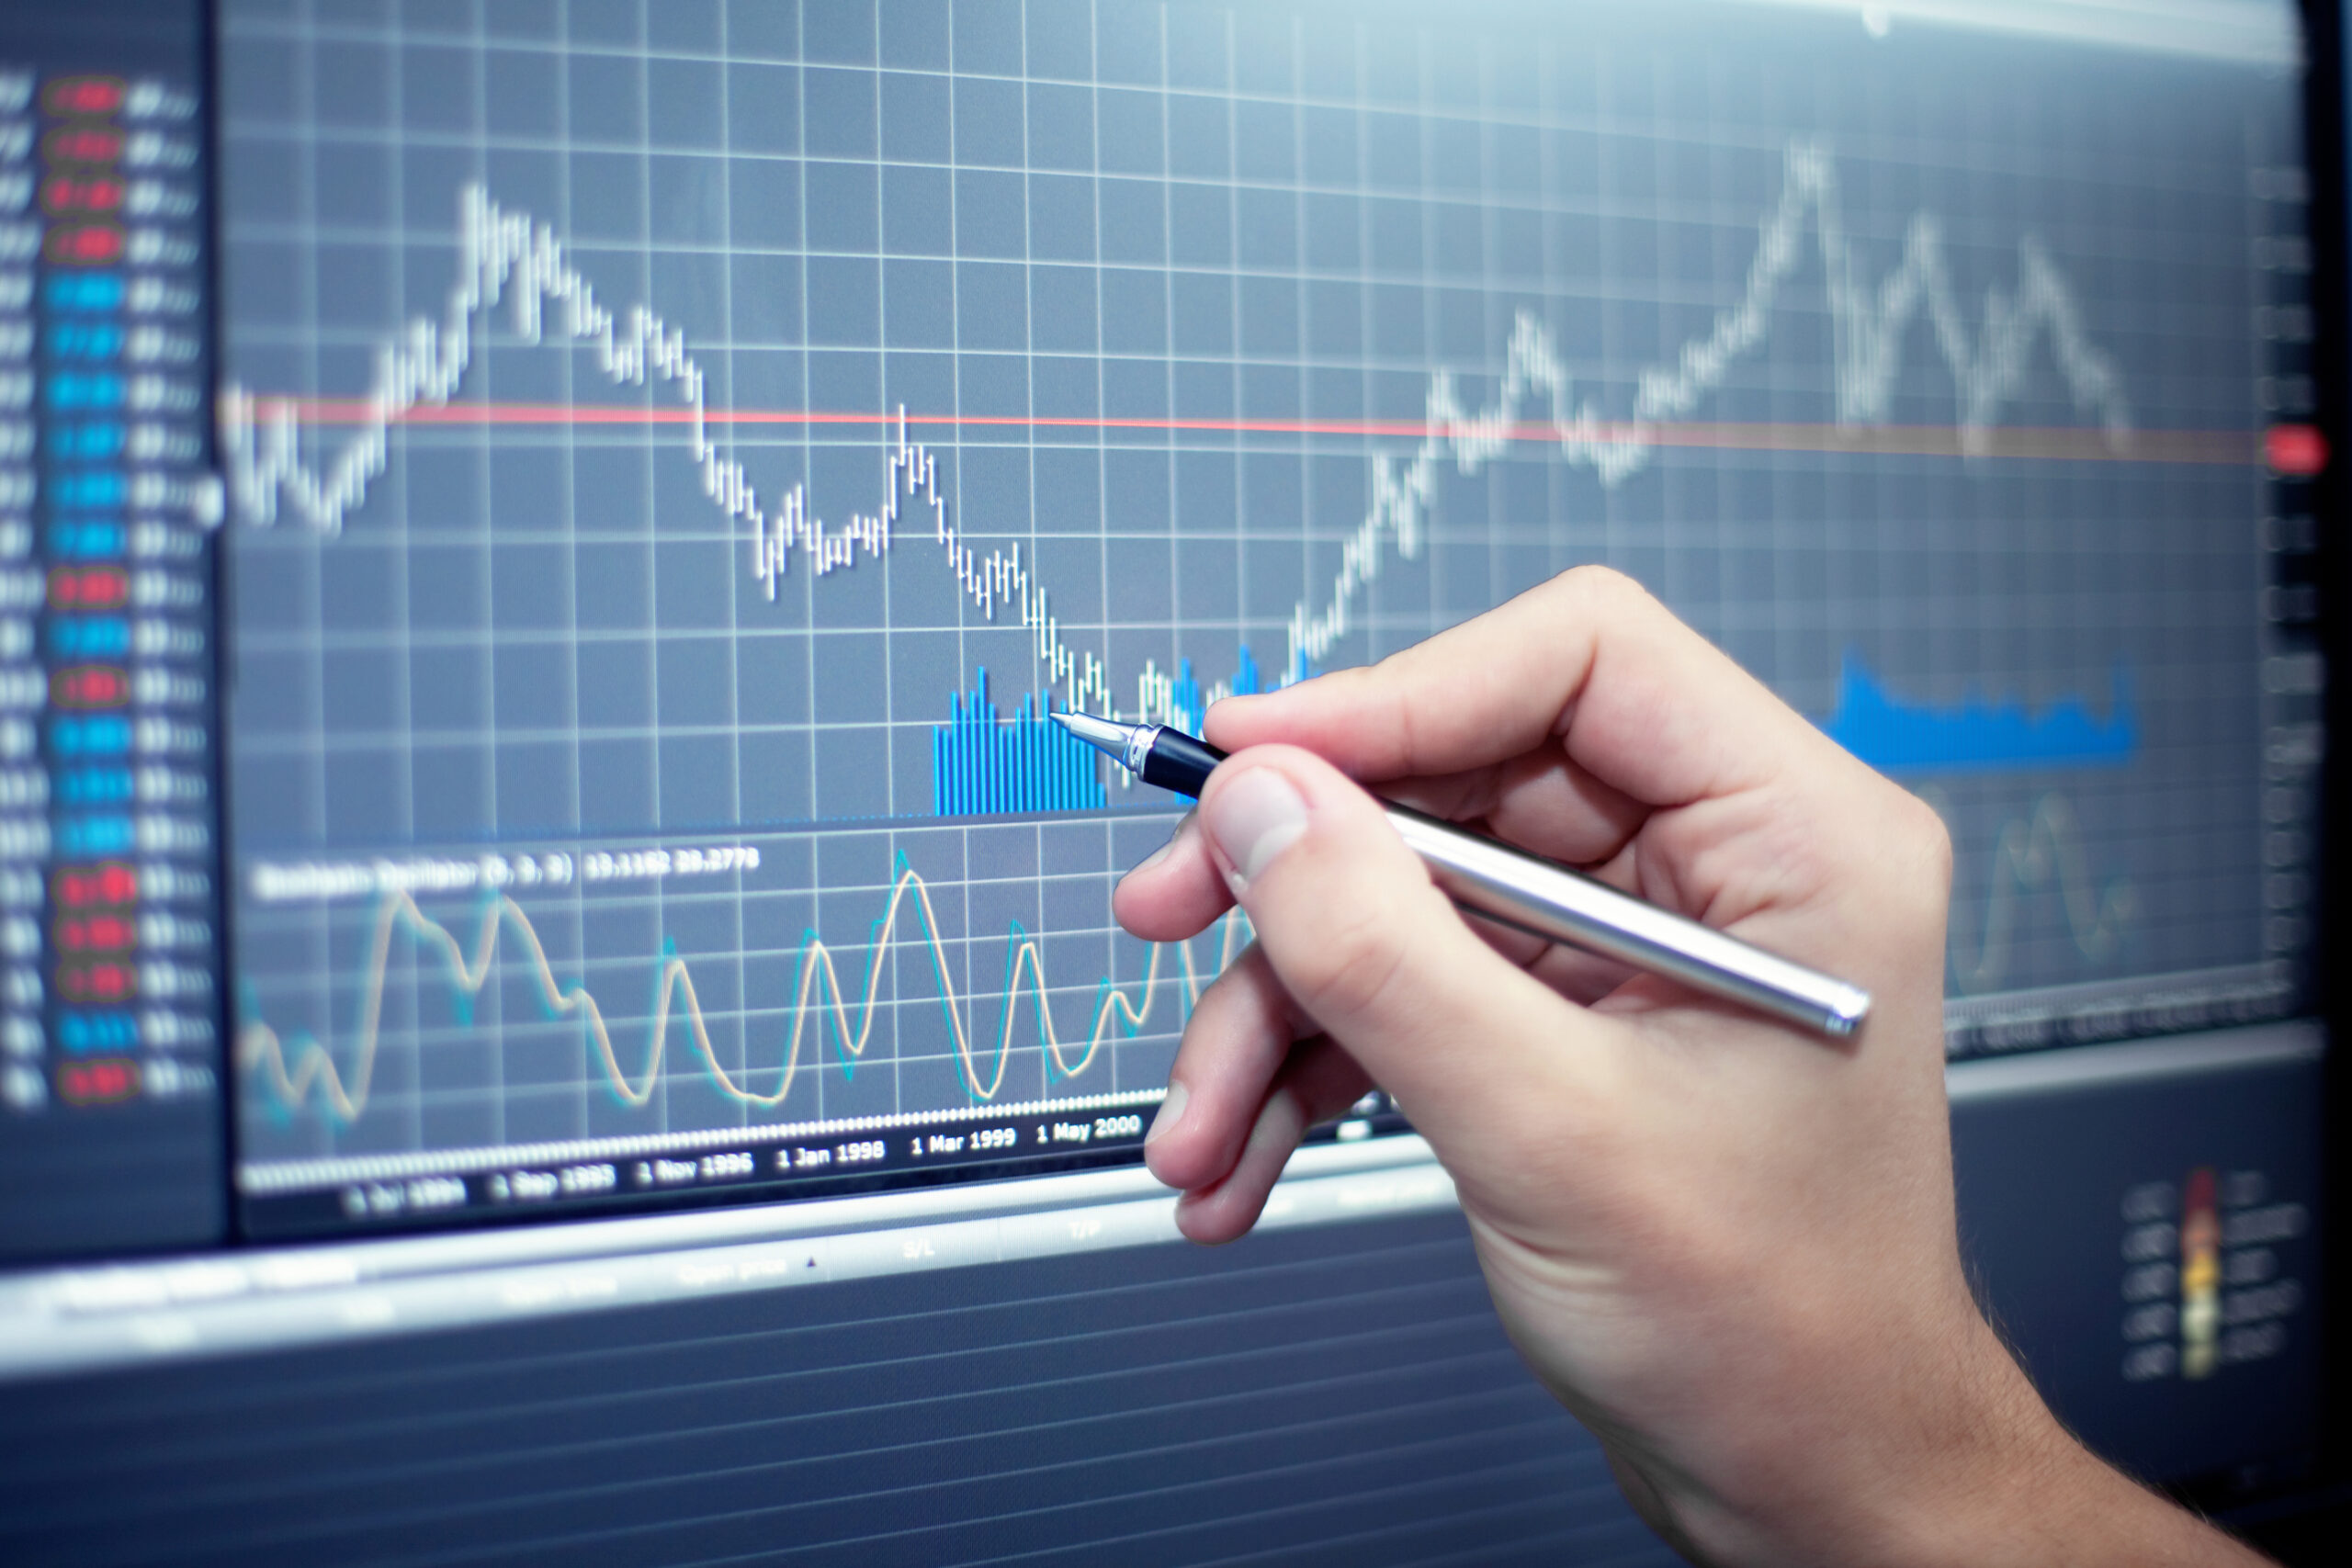 How To Open Trading Account